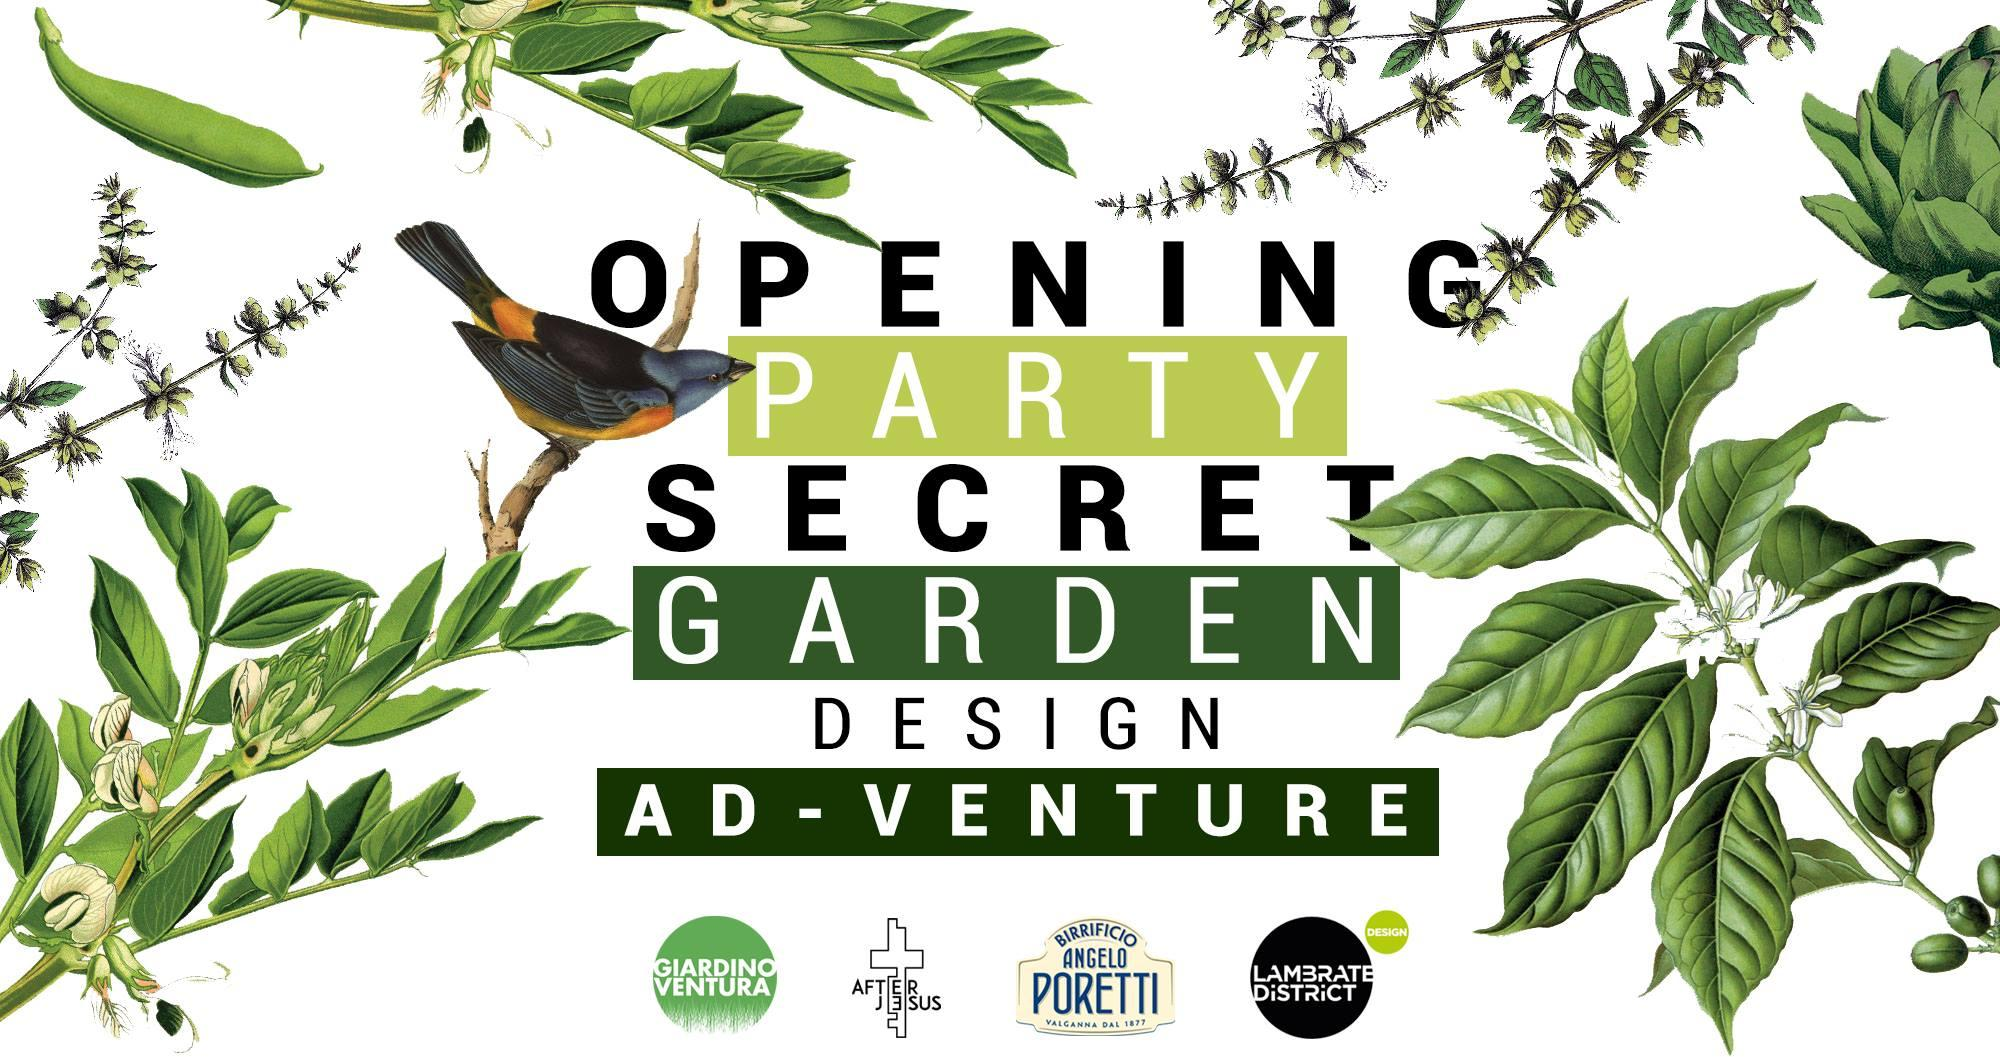 Fuorisalone 2019 : Opening Party Secret Garden